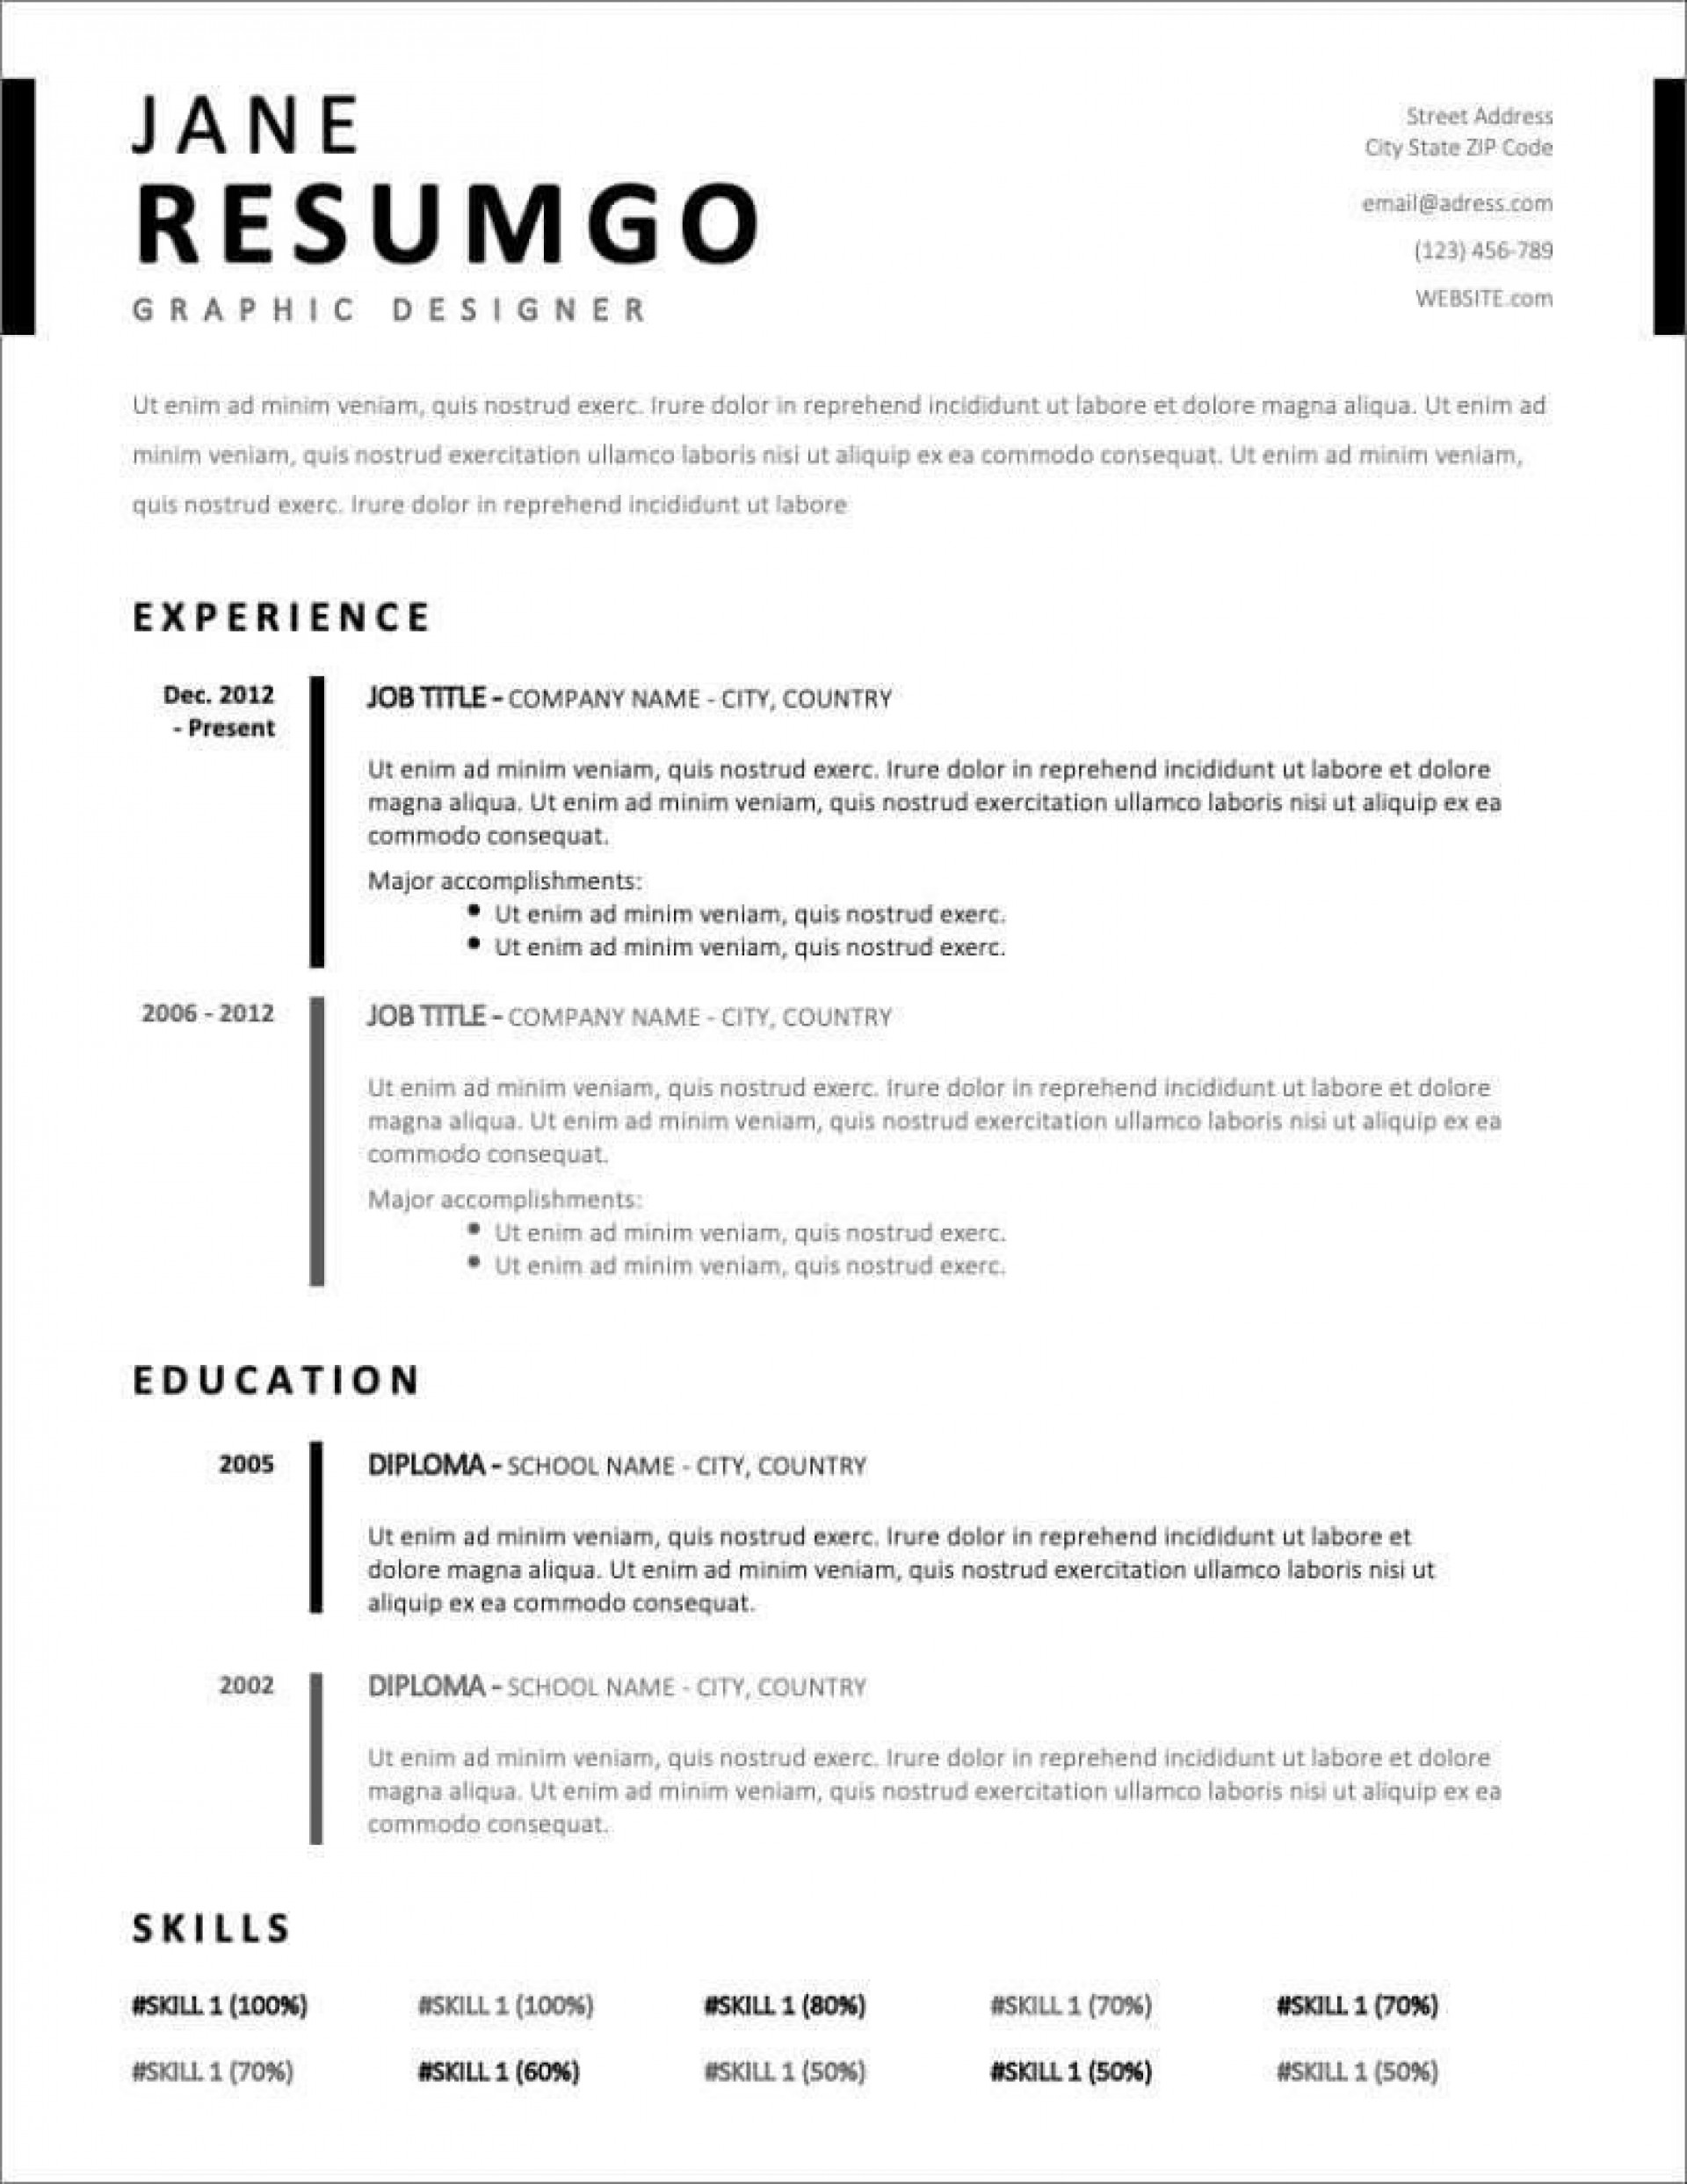 008 Outstanding Easy Free Resume Template Idea  Templates Online Download Quick Builder1920